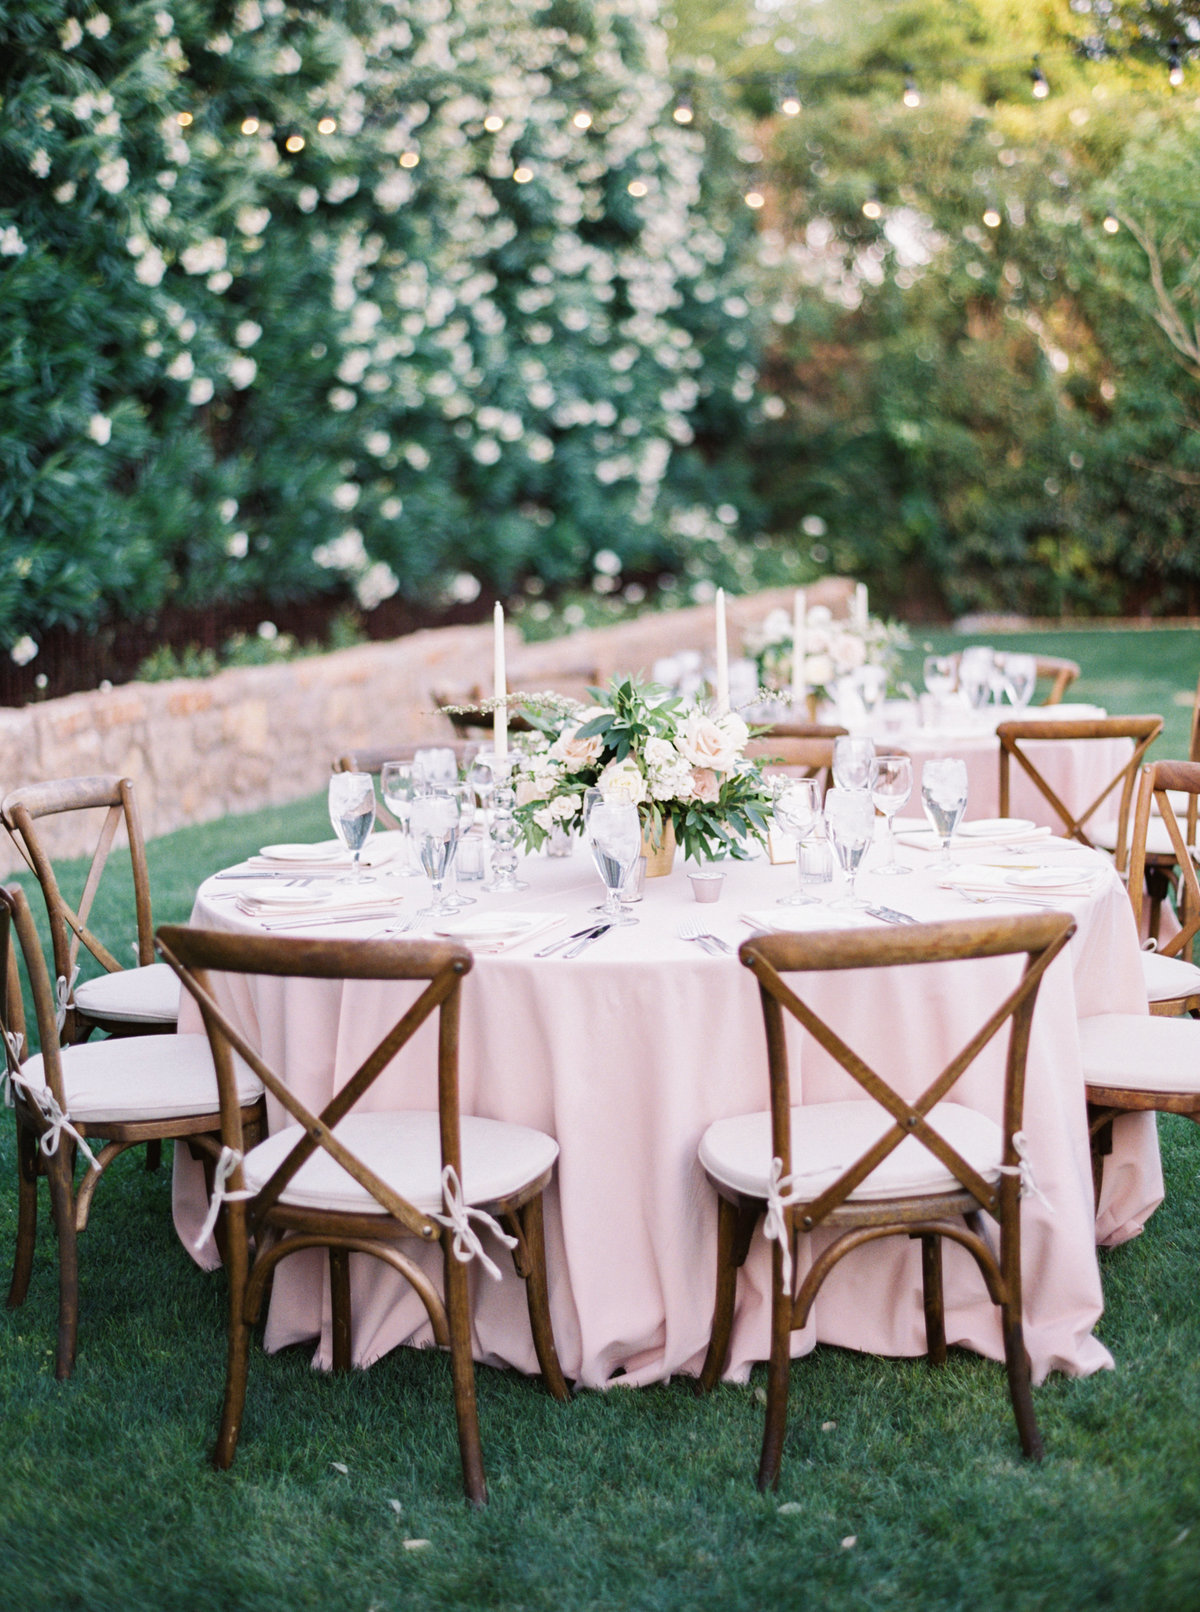 Paradise Valley Wedding Paradise Valley Wedding Planner Mary Claire Photography Arizona Film Photographer Carte Blanch Florals Outdoor Wedding Bistro Lights Garden Wedding Ashley Gain Weddings